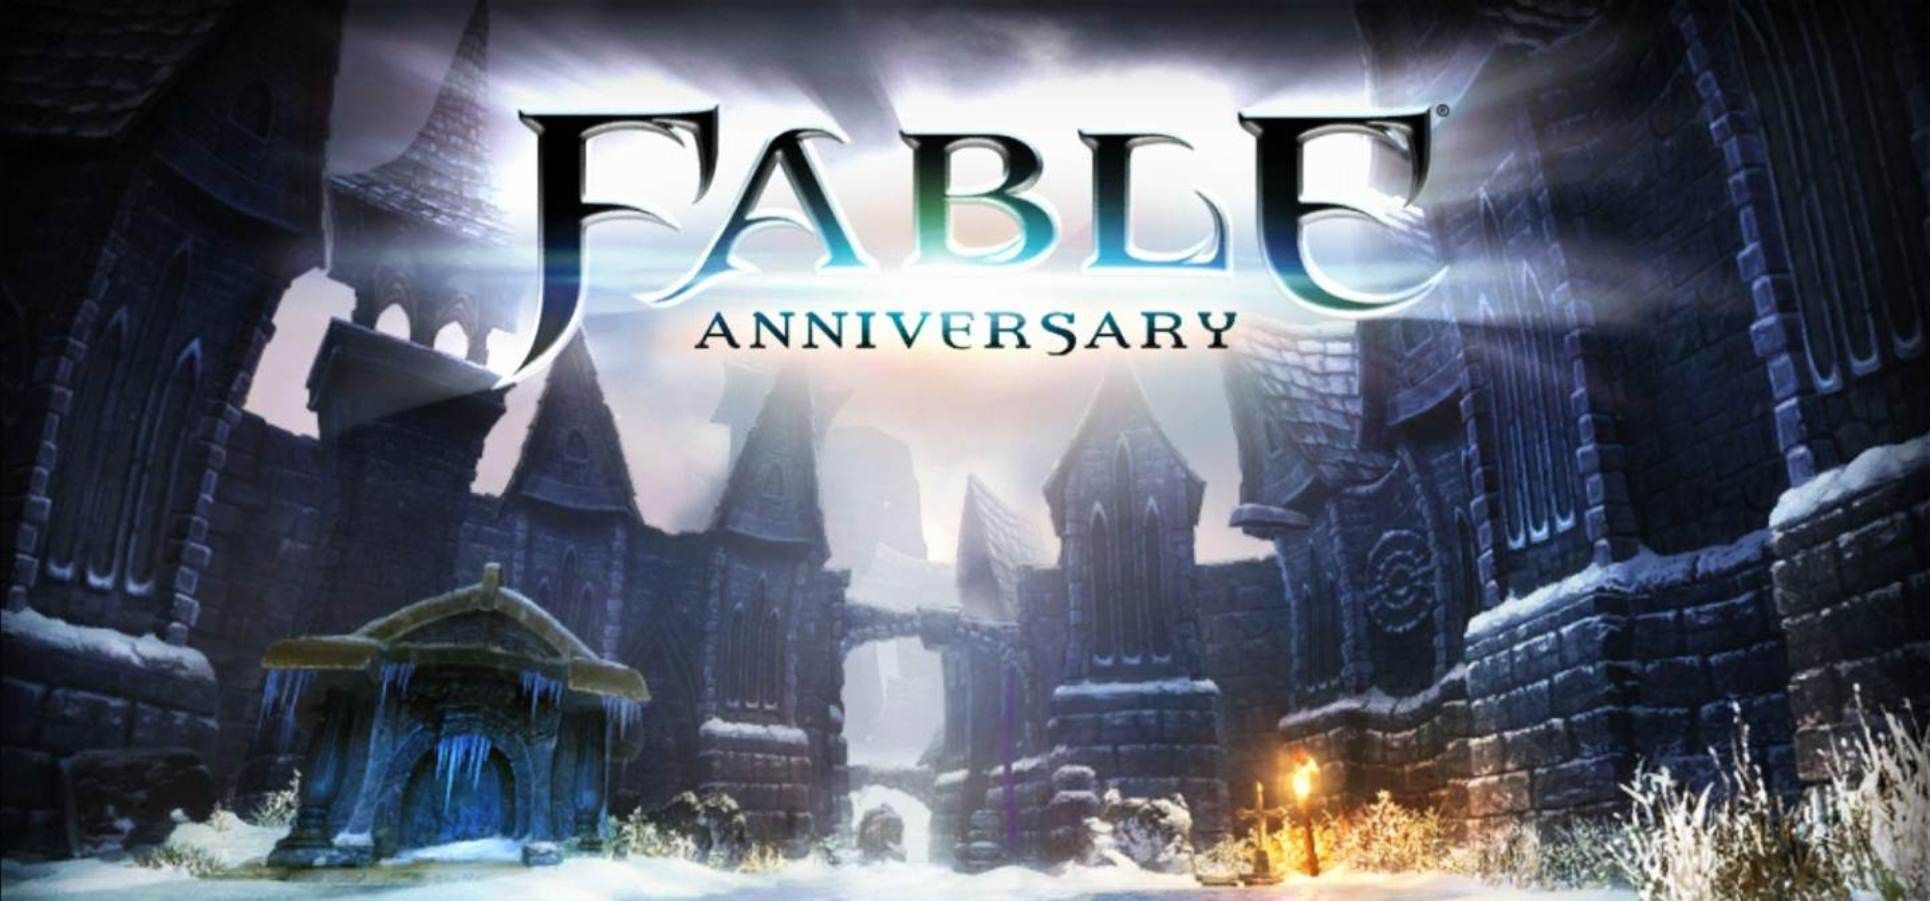 Fable Anniversary Wallpaper Hd Wallpaper Fables Gaming Pc